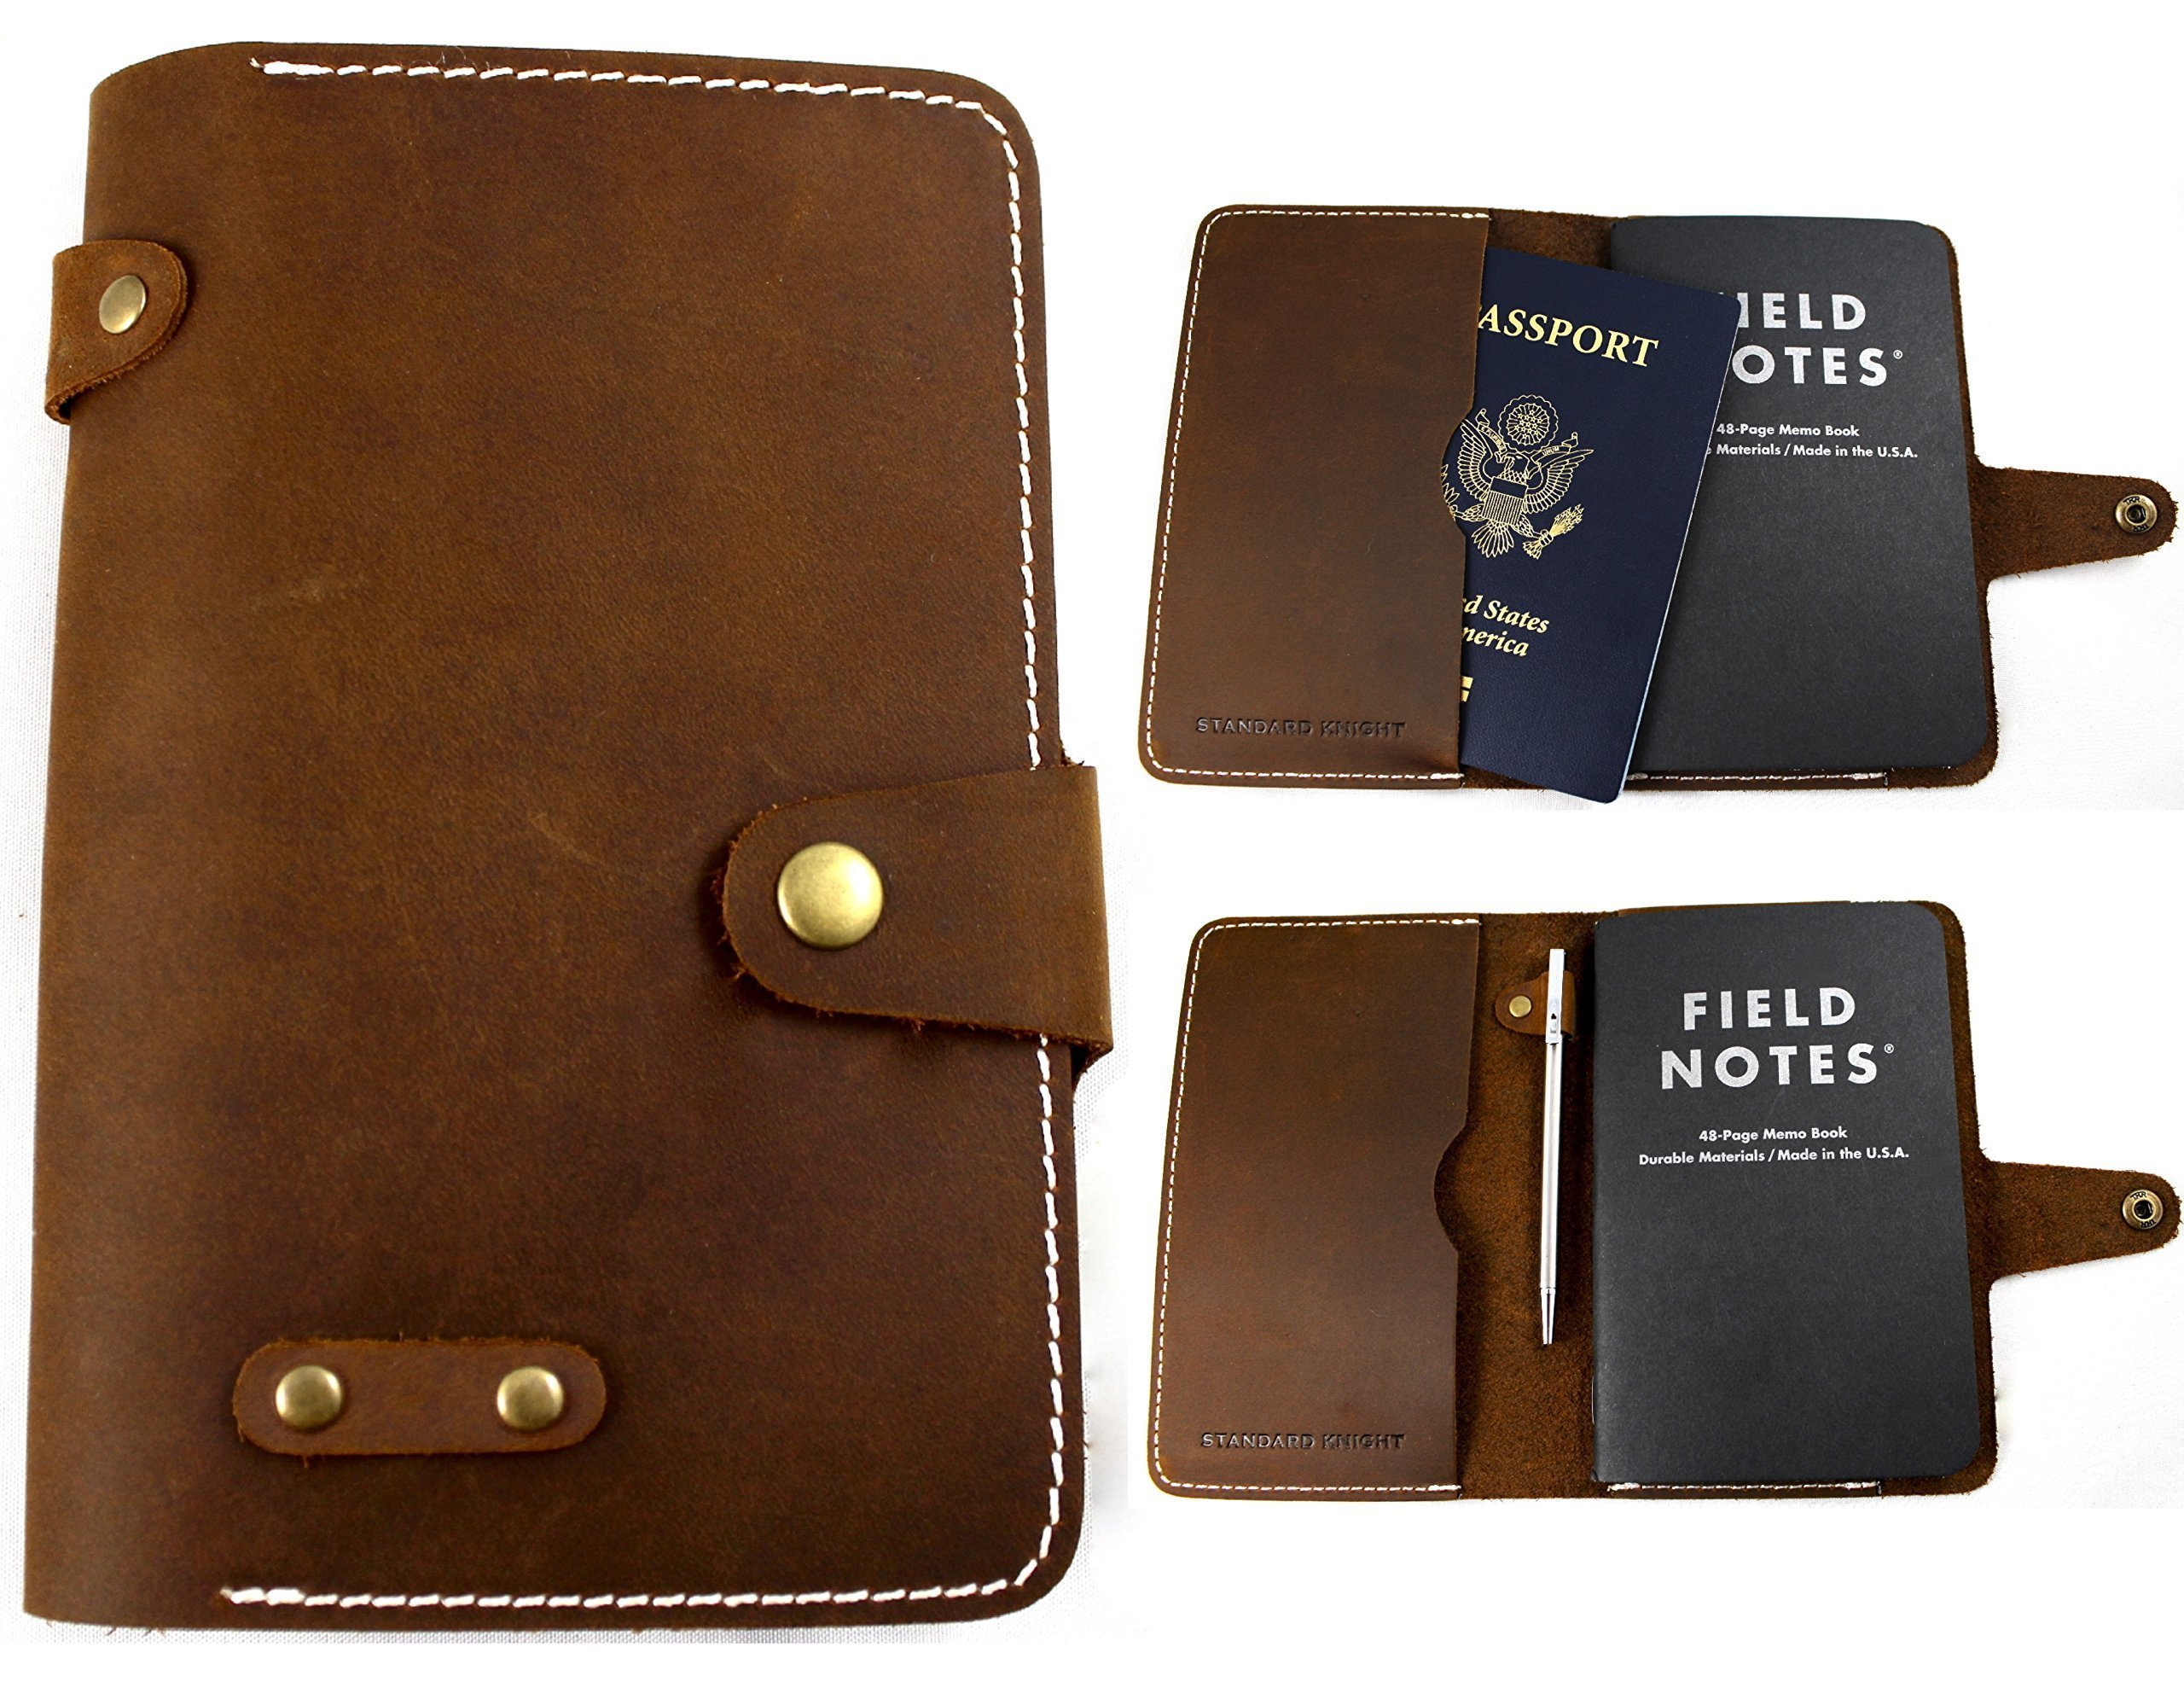 Standard Knight Co. Leather Passport and Pocket Notebook Cover - Fits Field Notes, Rhodia and Pocket Moleskin - Modern, Minimalist Design - Premium Quality, Full-Grain Crazy Horse Leather